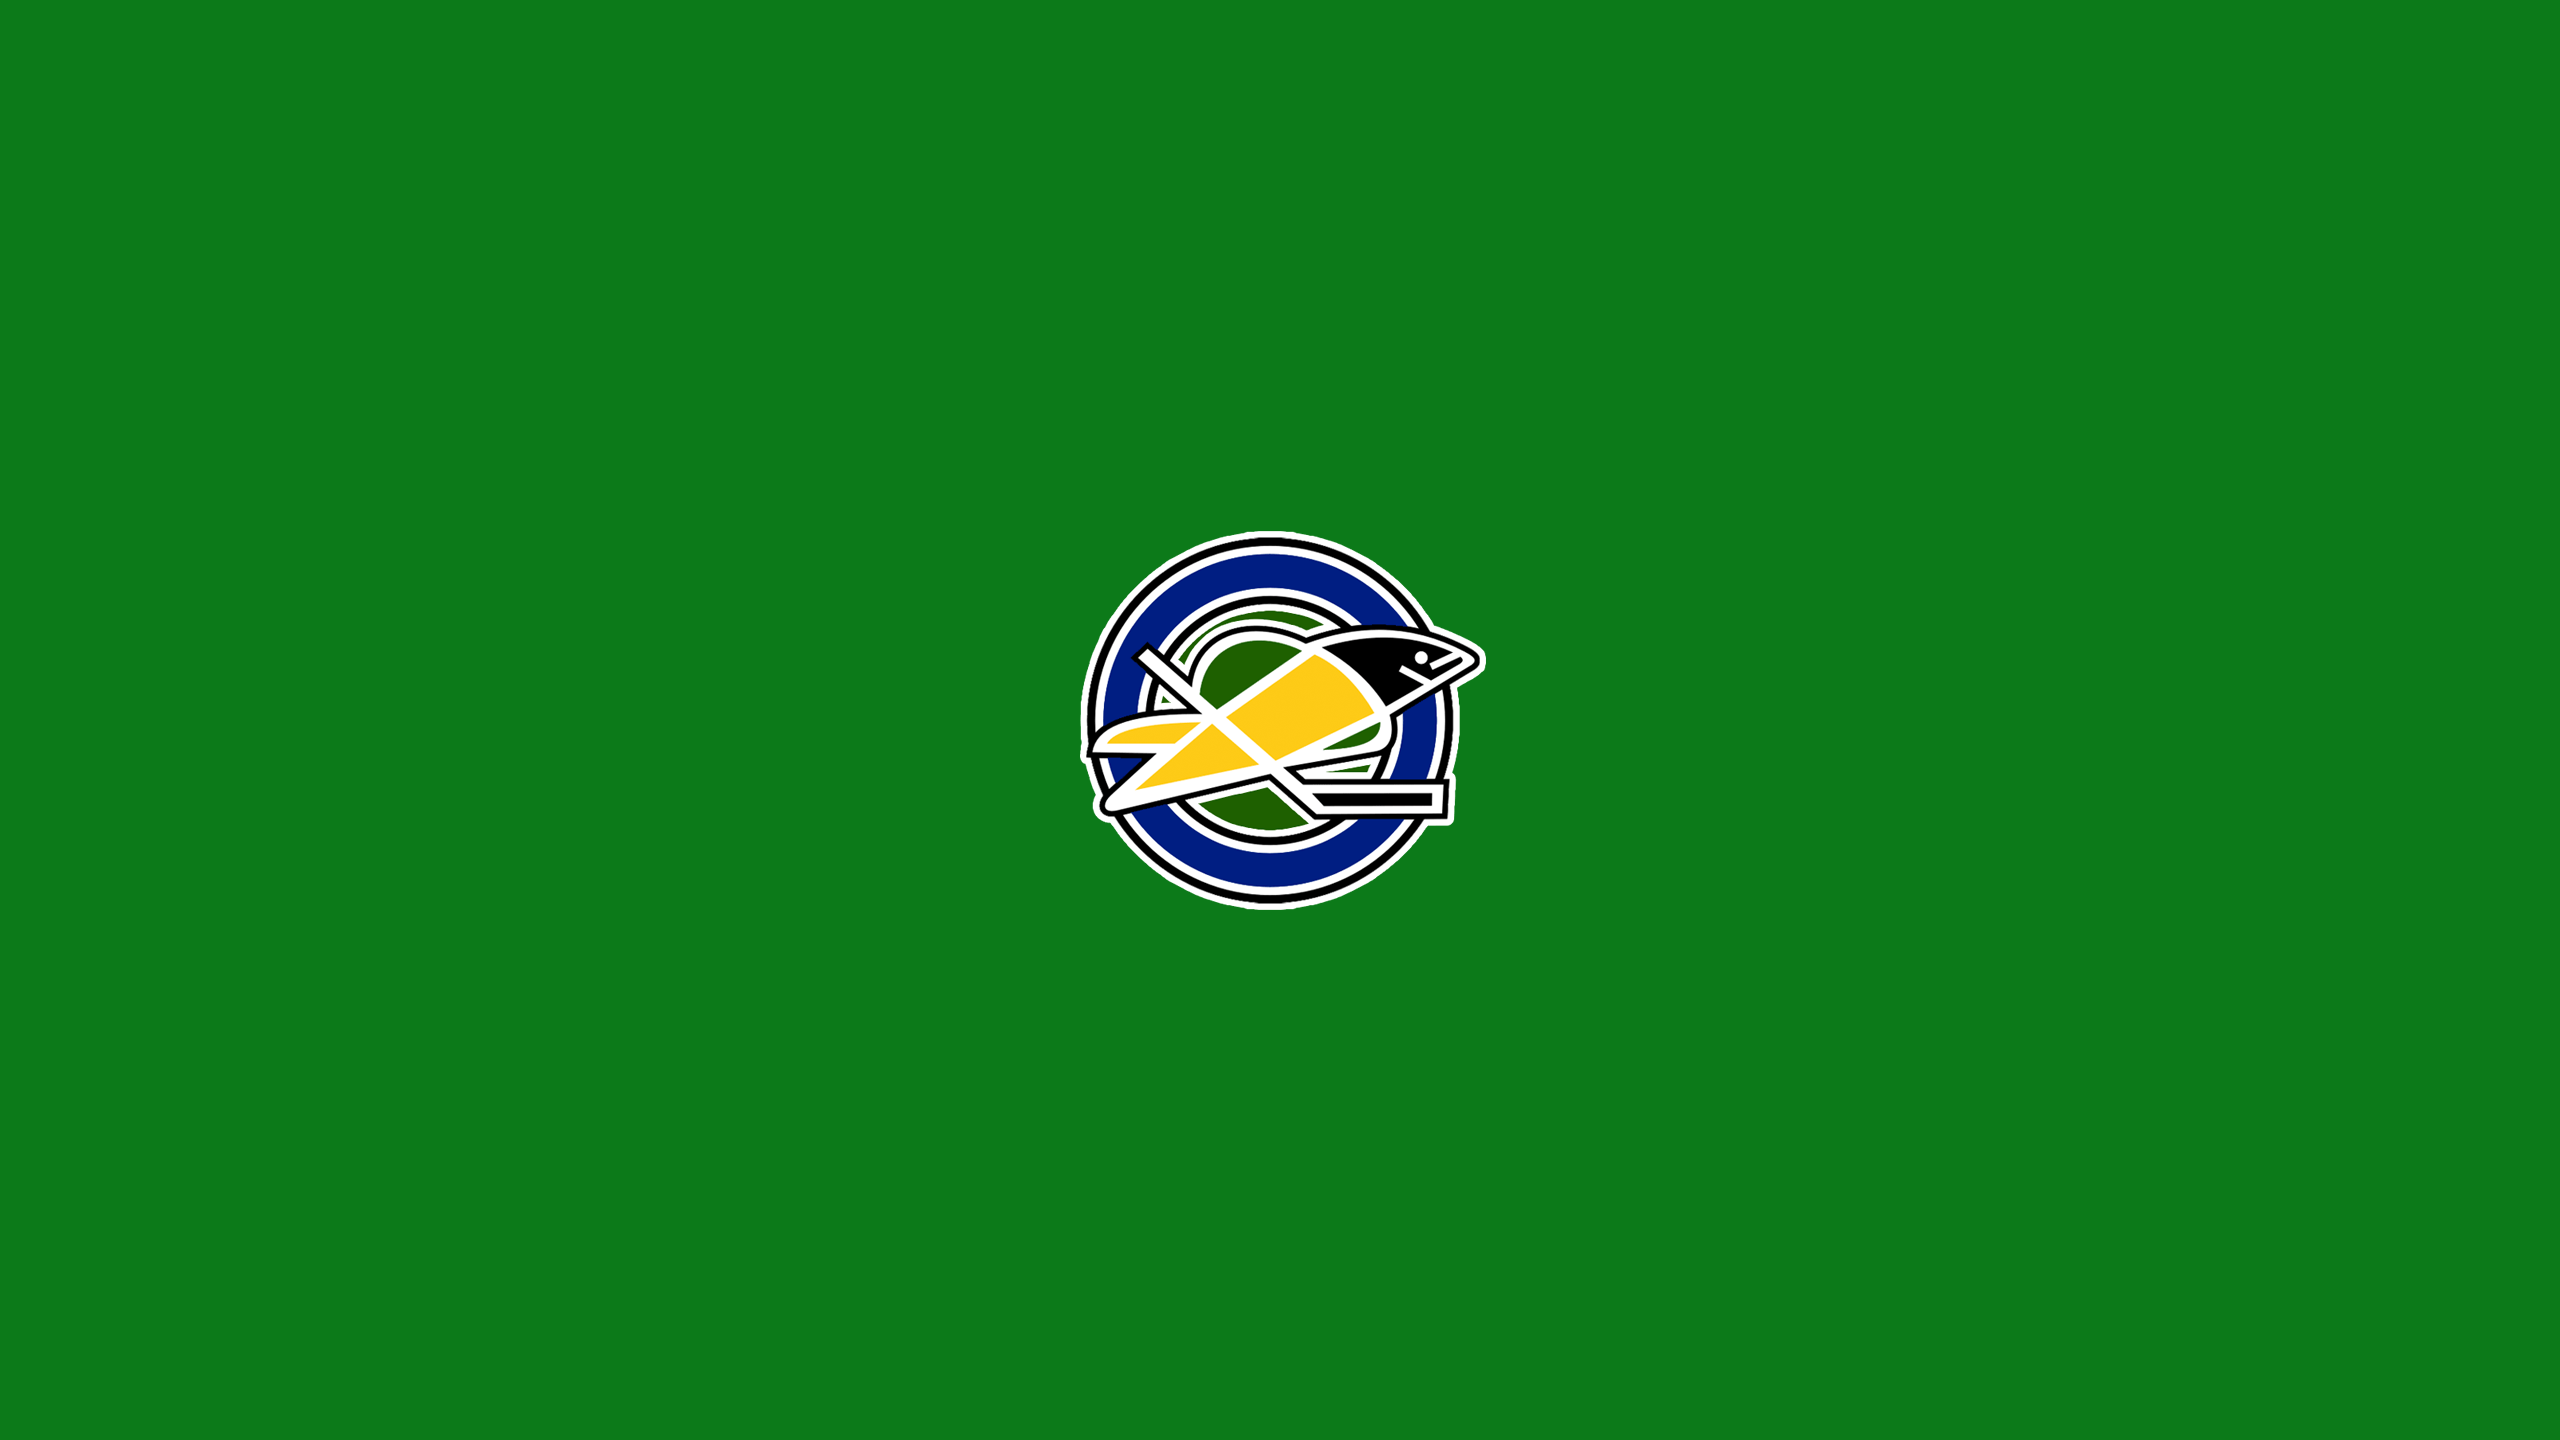 California Golden Seals (Old School)